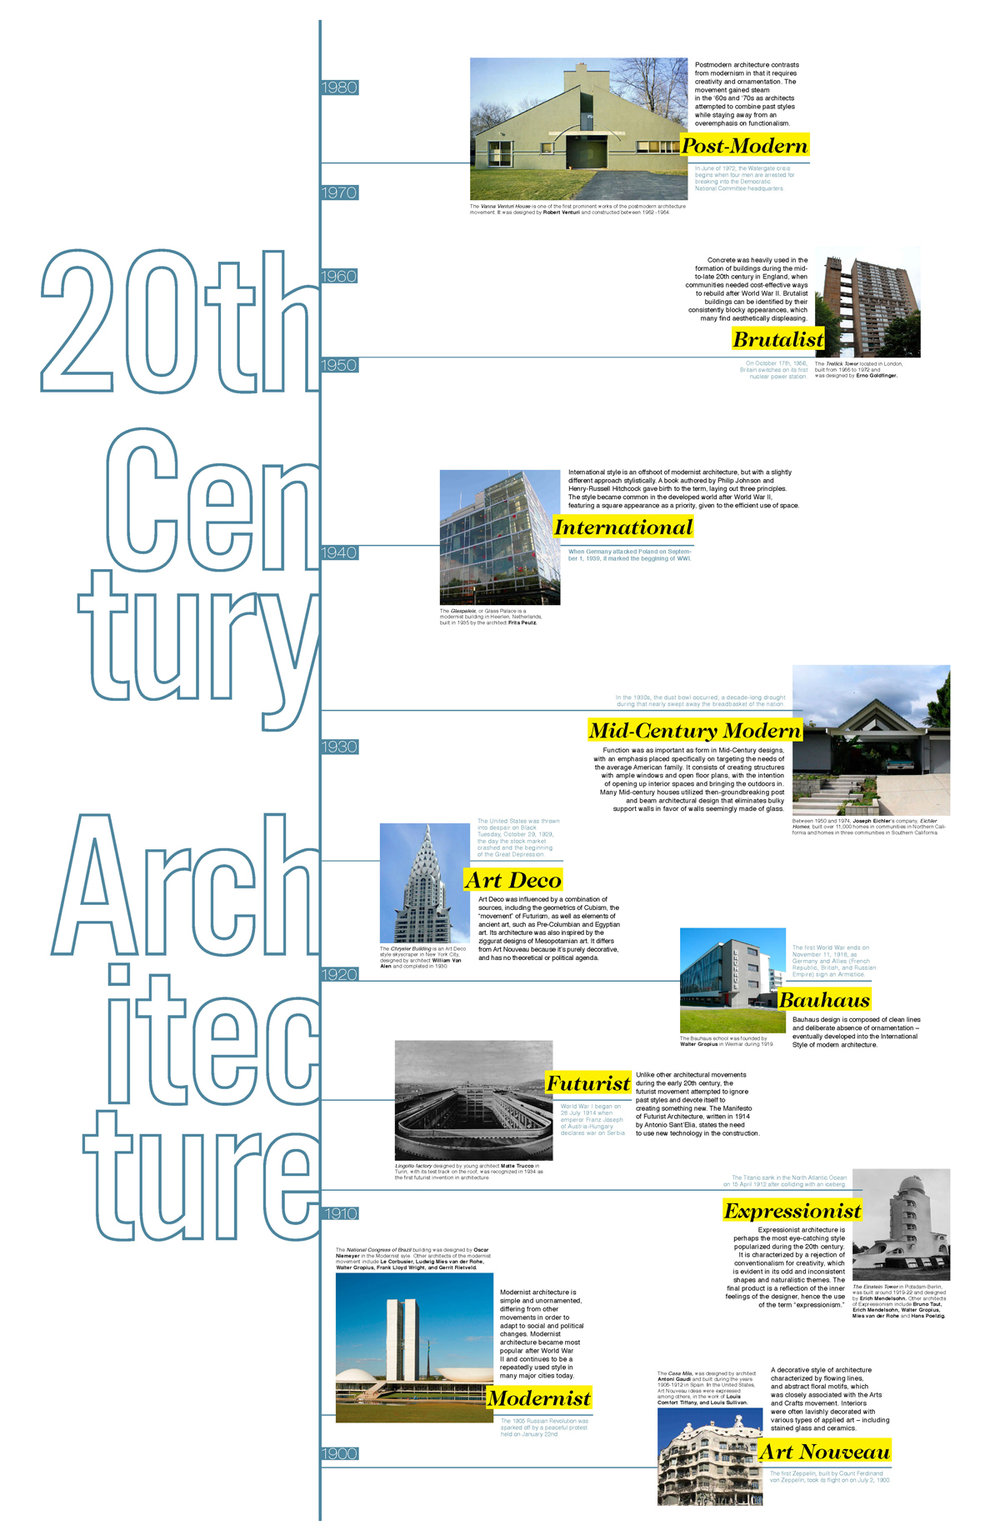 architecture timeline. Architecture Movements Dispersed In A Linear Timeline With Brief Description Small Fact About Each Section And Photograph